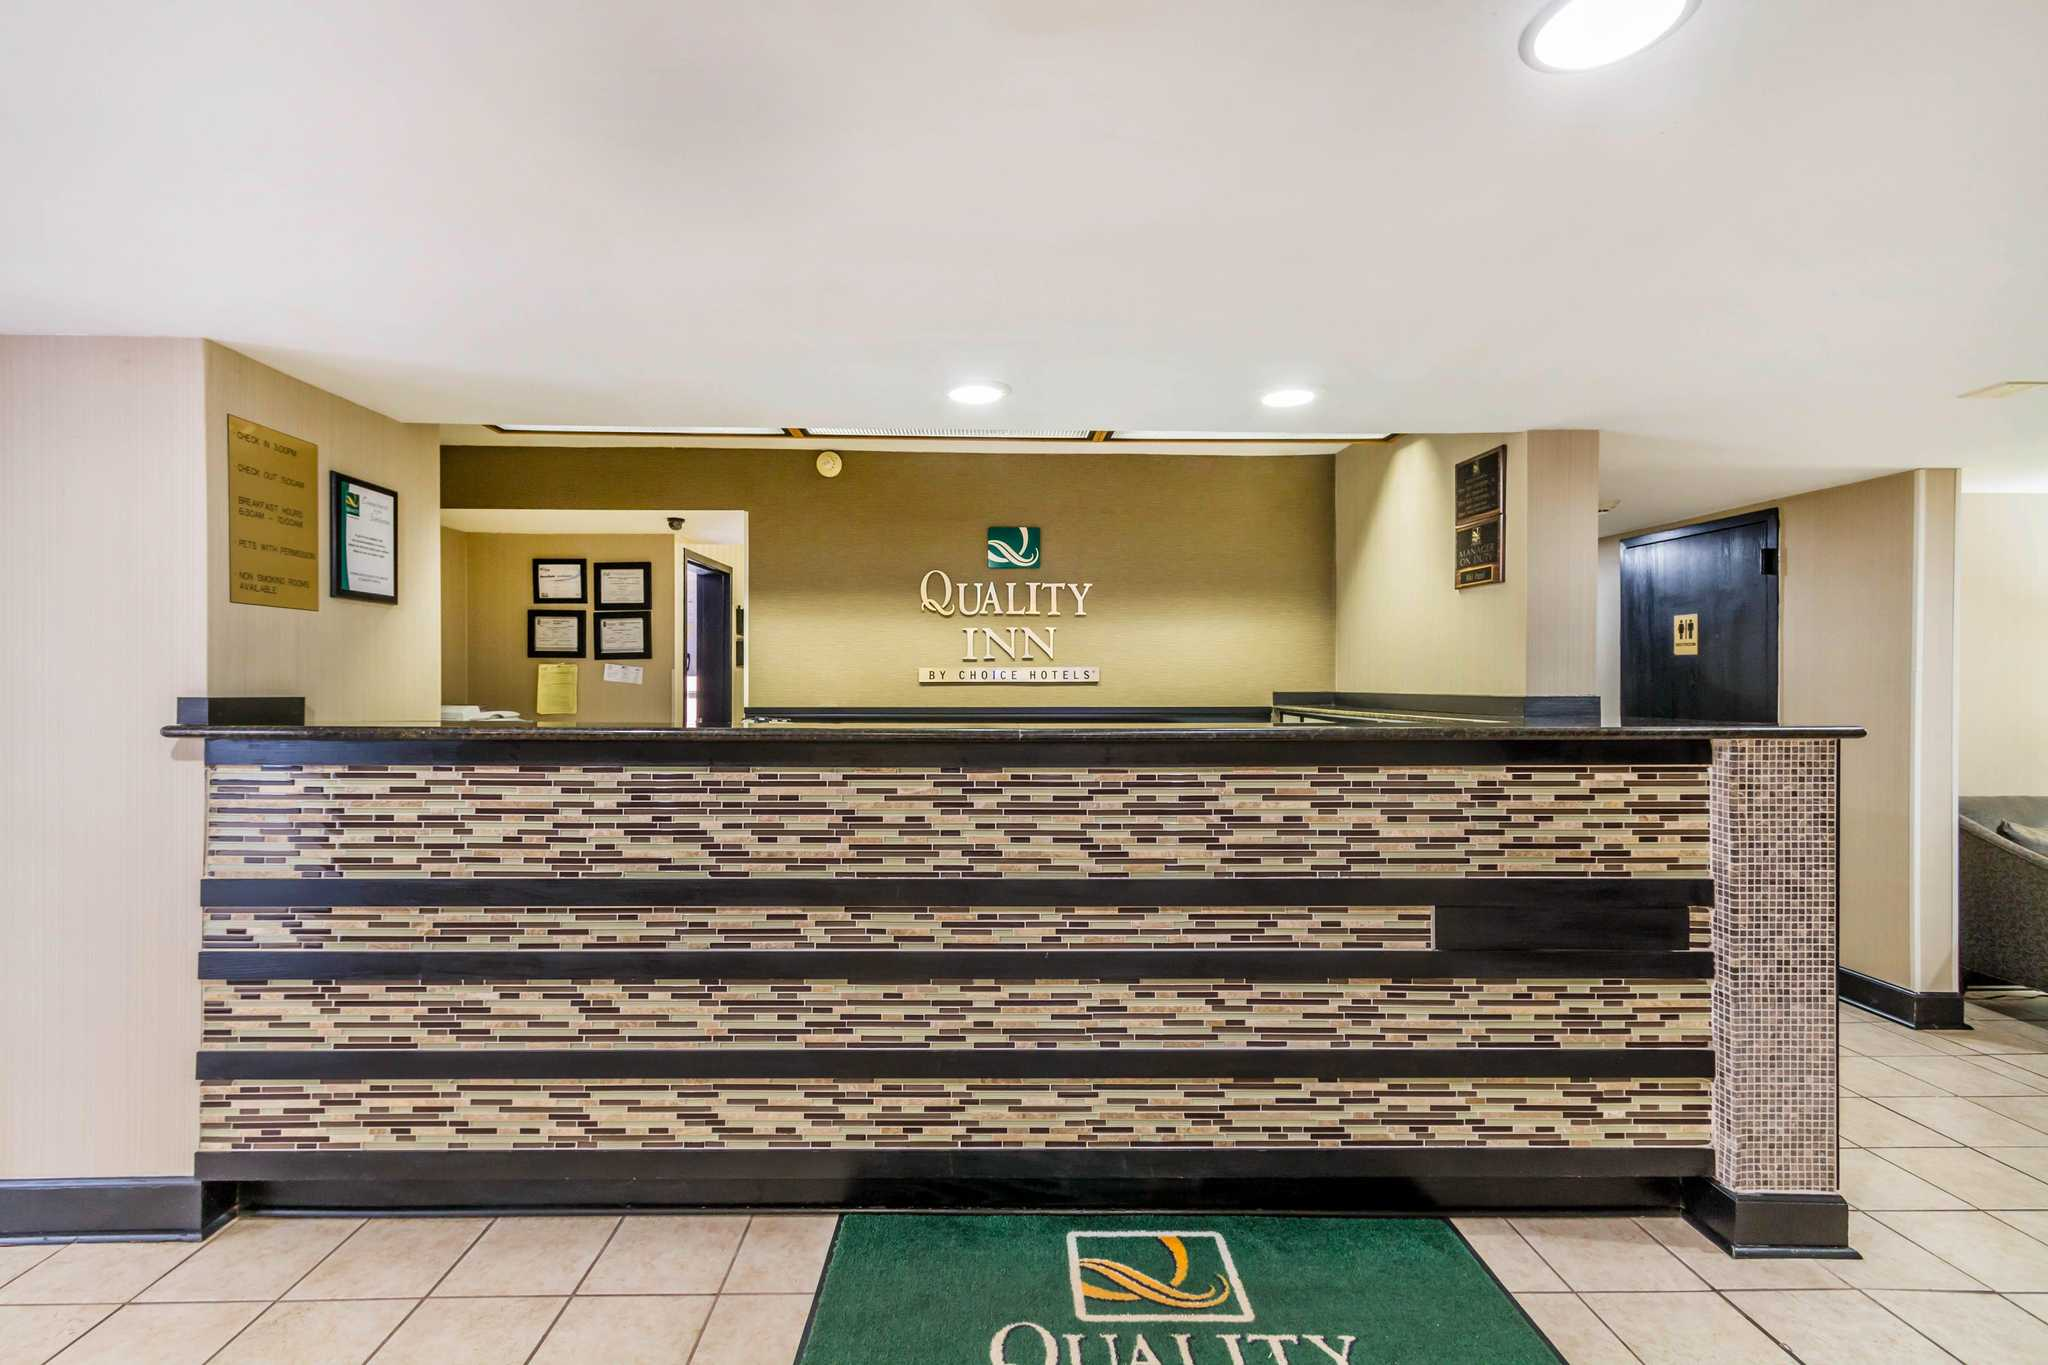 Business Travel If you're looking for a hotel in Tybee Island GA to meet your business travel needs or a place to stay that's just 20 minutes from Savannah, confidently depend on us at Atlantis Inn .